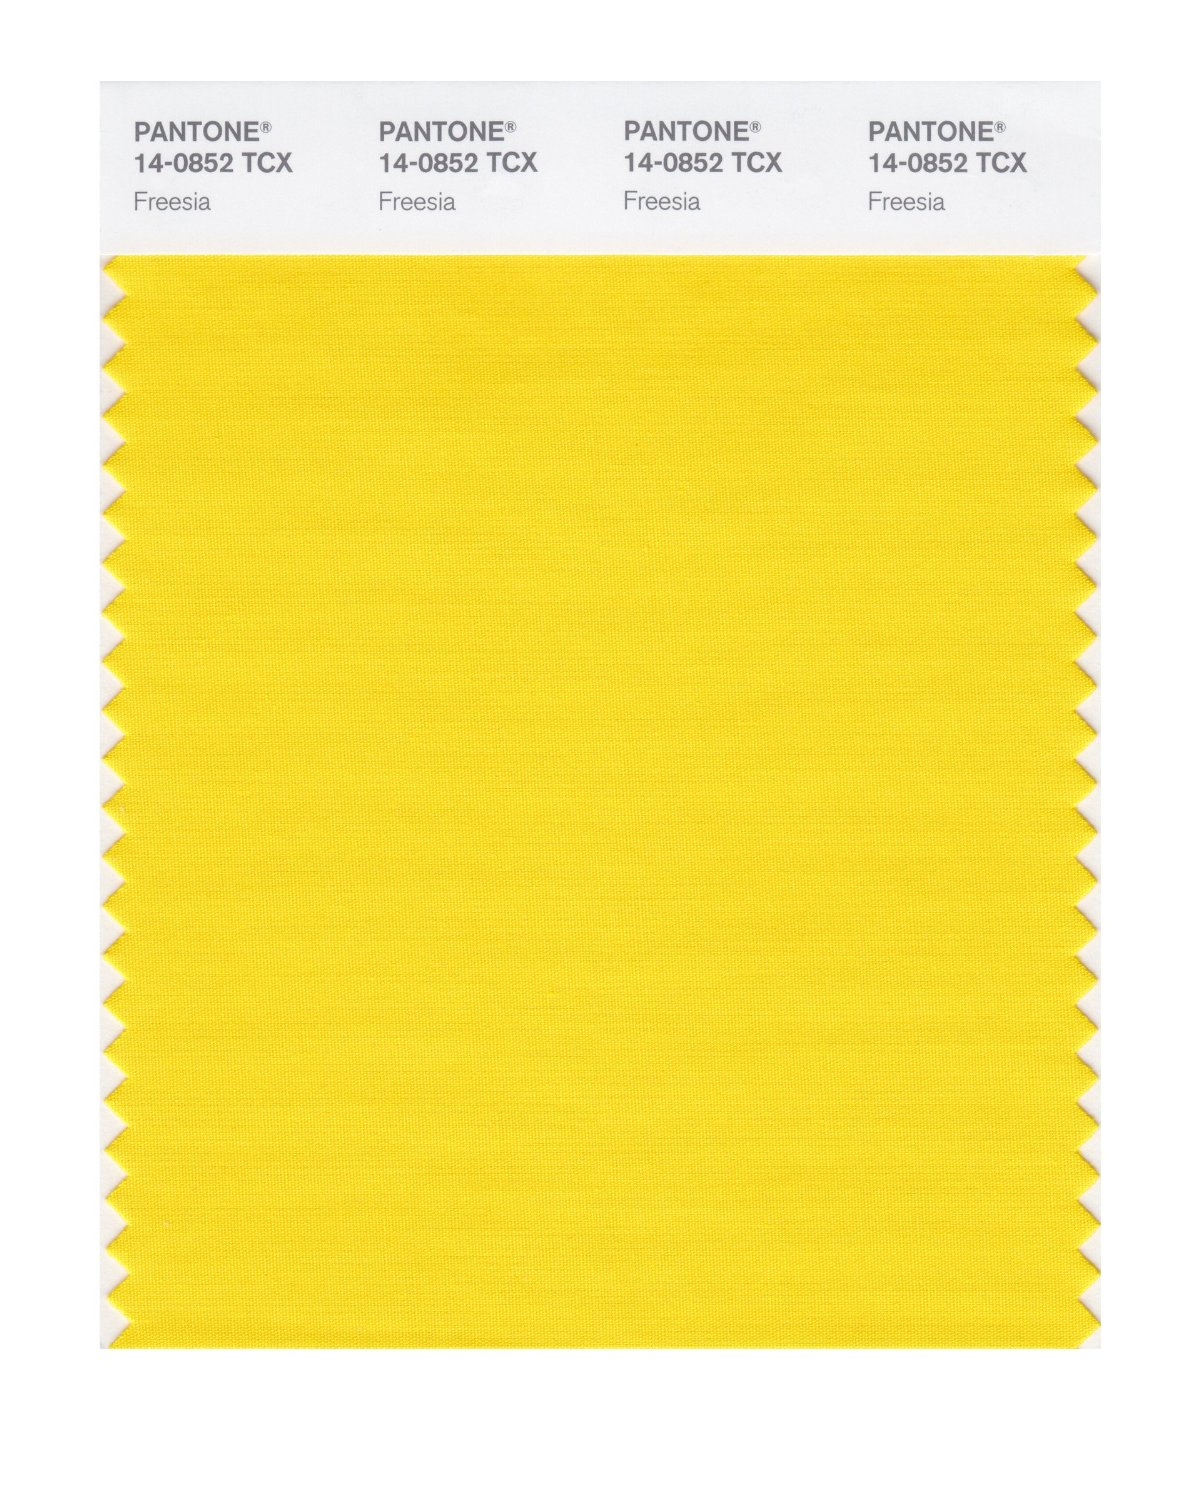 Pantone Smart Swatch 14-0852 Freesia